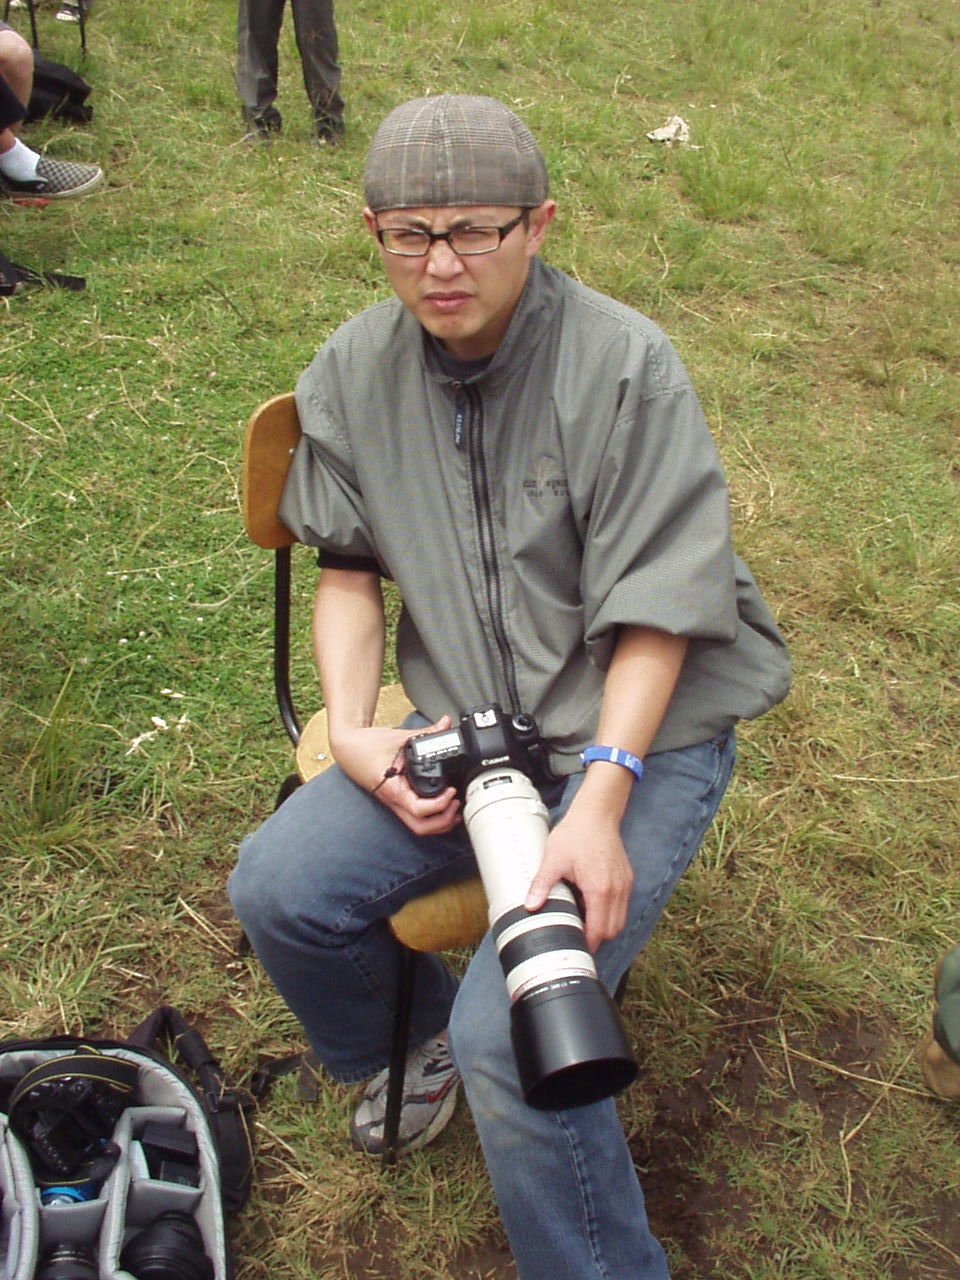 Photographer Neil Ta with a really big camera